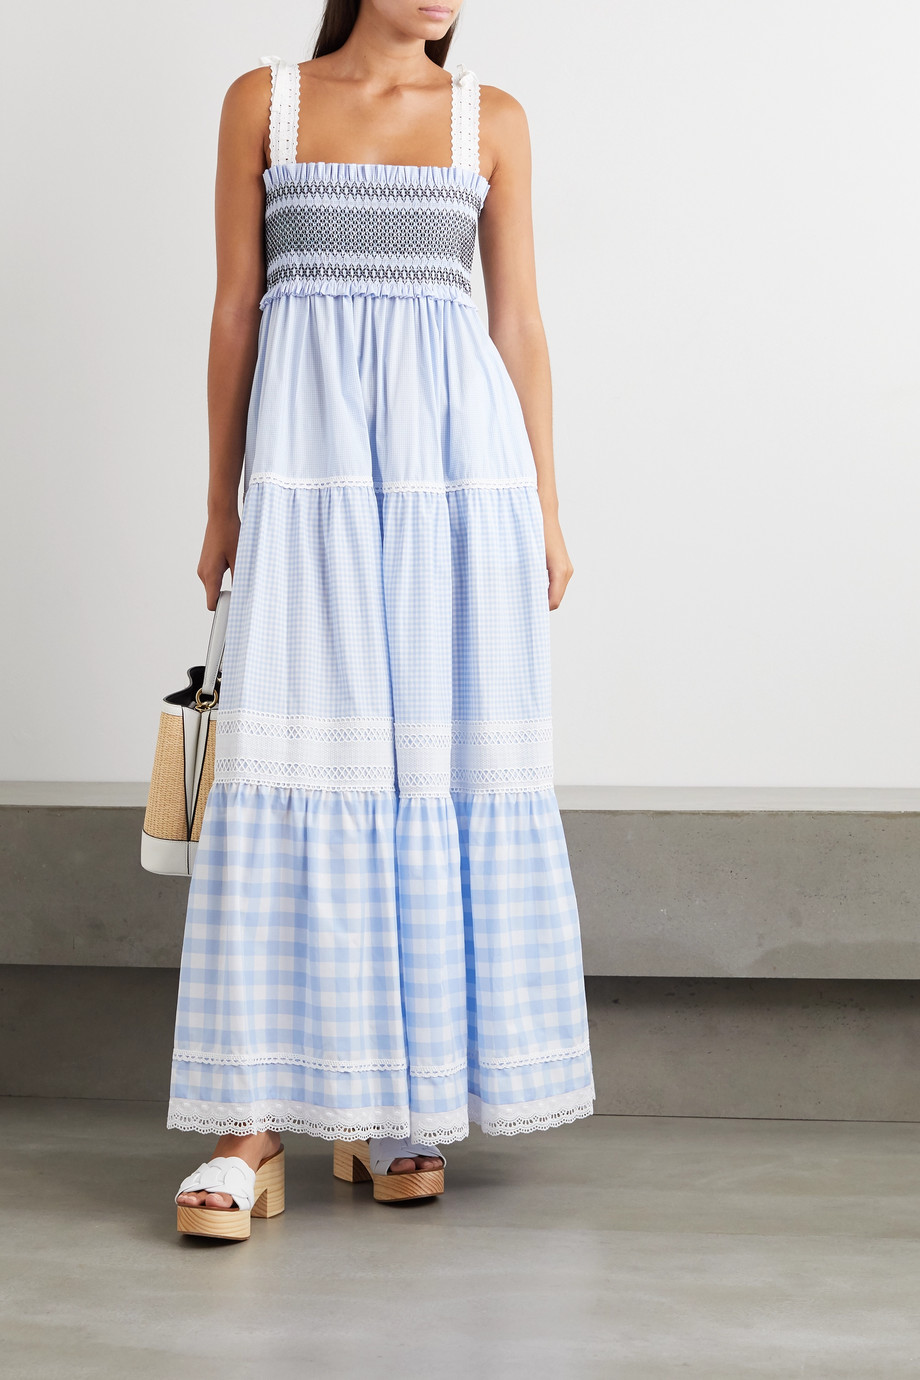 Miu Miu Broderie anglaise-trimmed shirred gingham cotton maxi dress